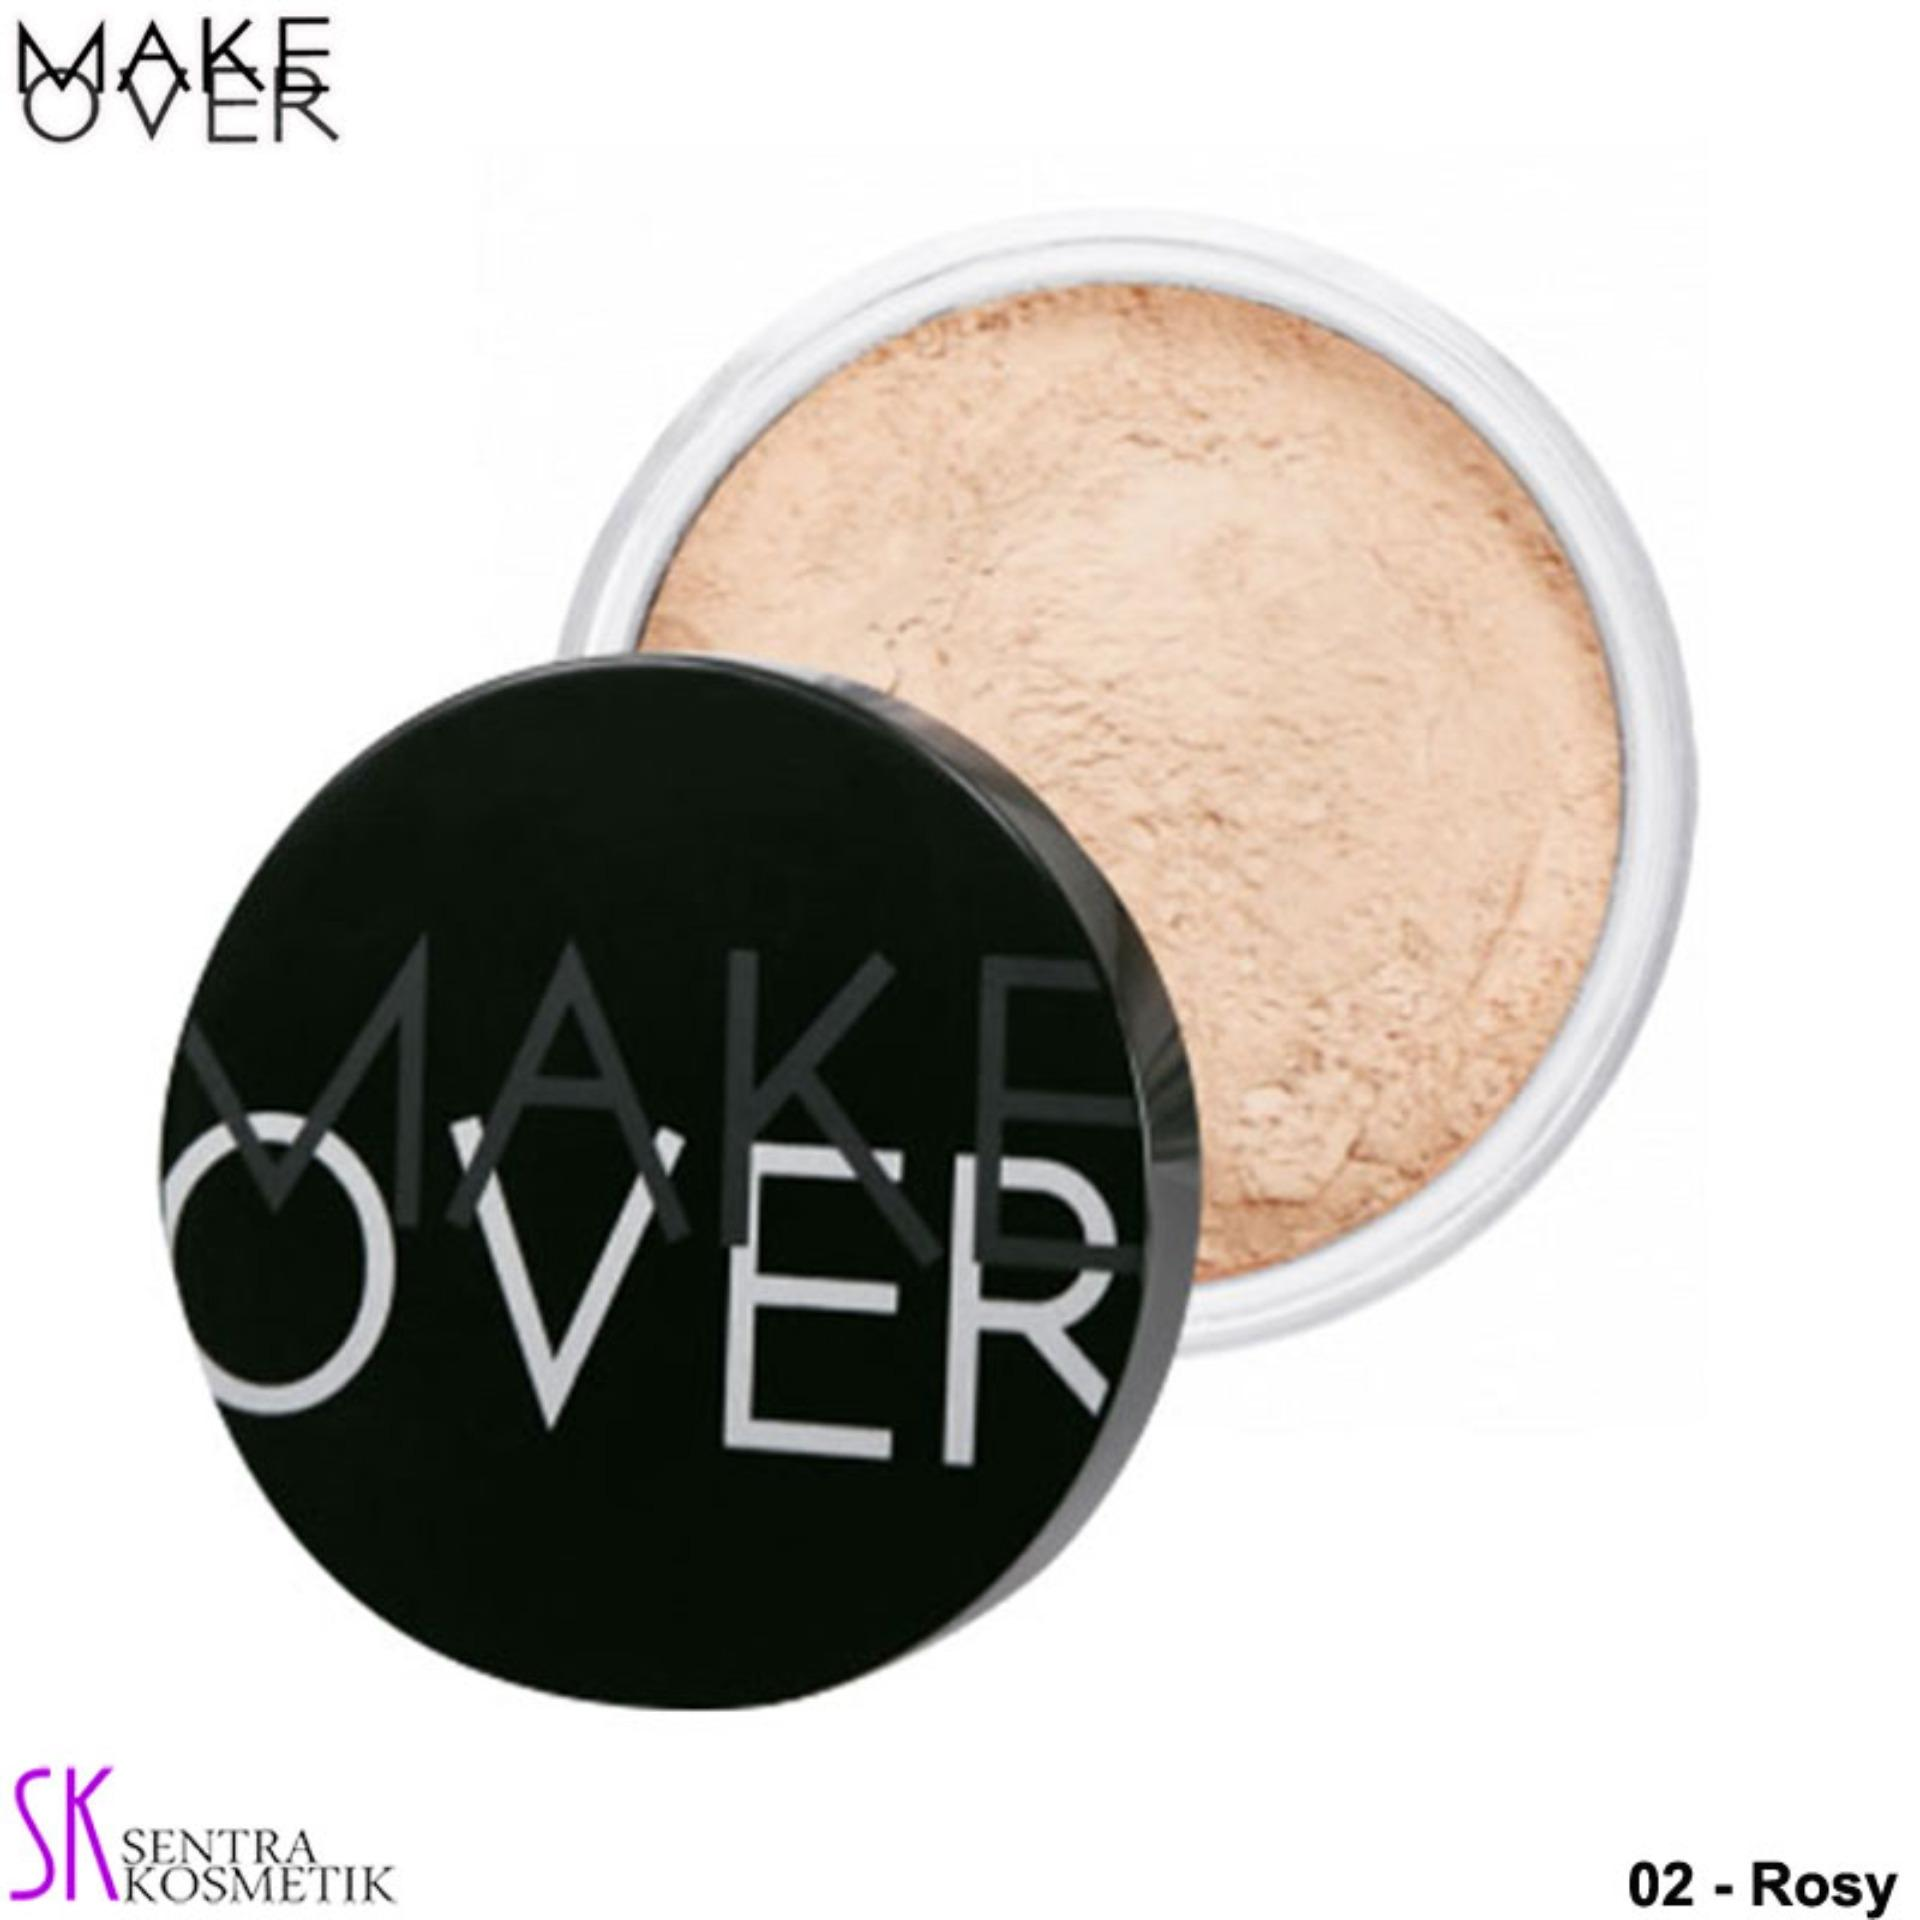 MAKE OVER Silky Smooth Translucent Powder 02 - Rosy